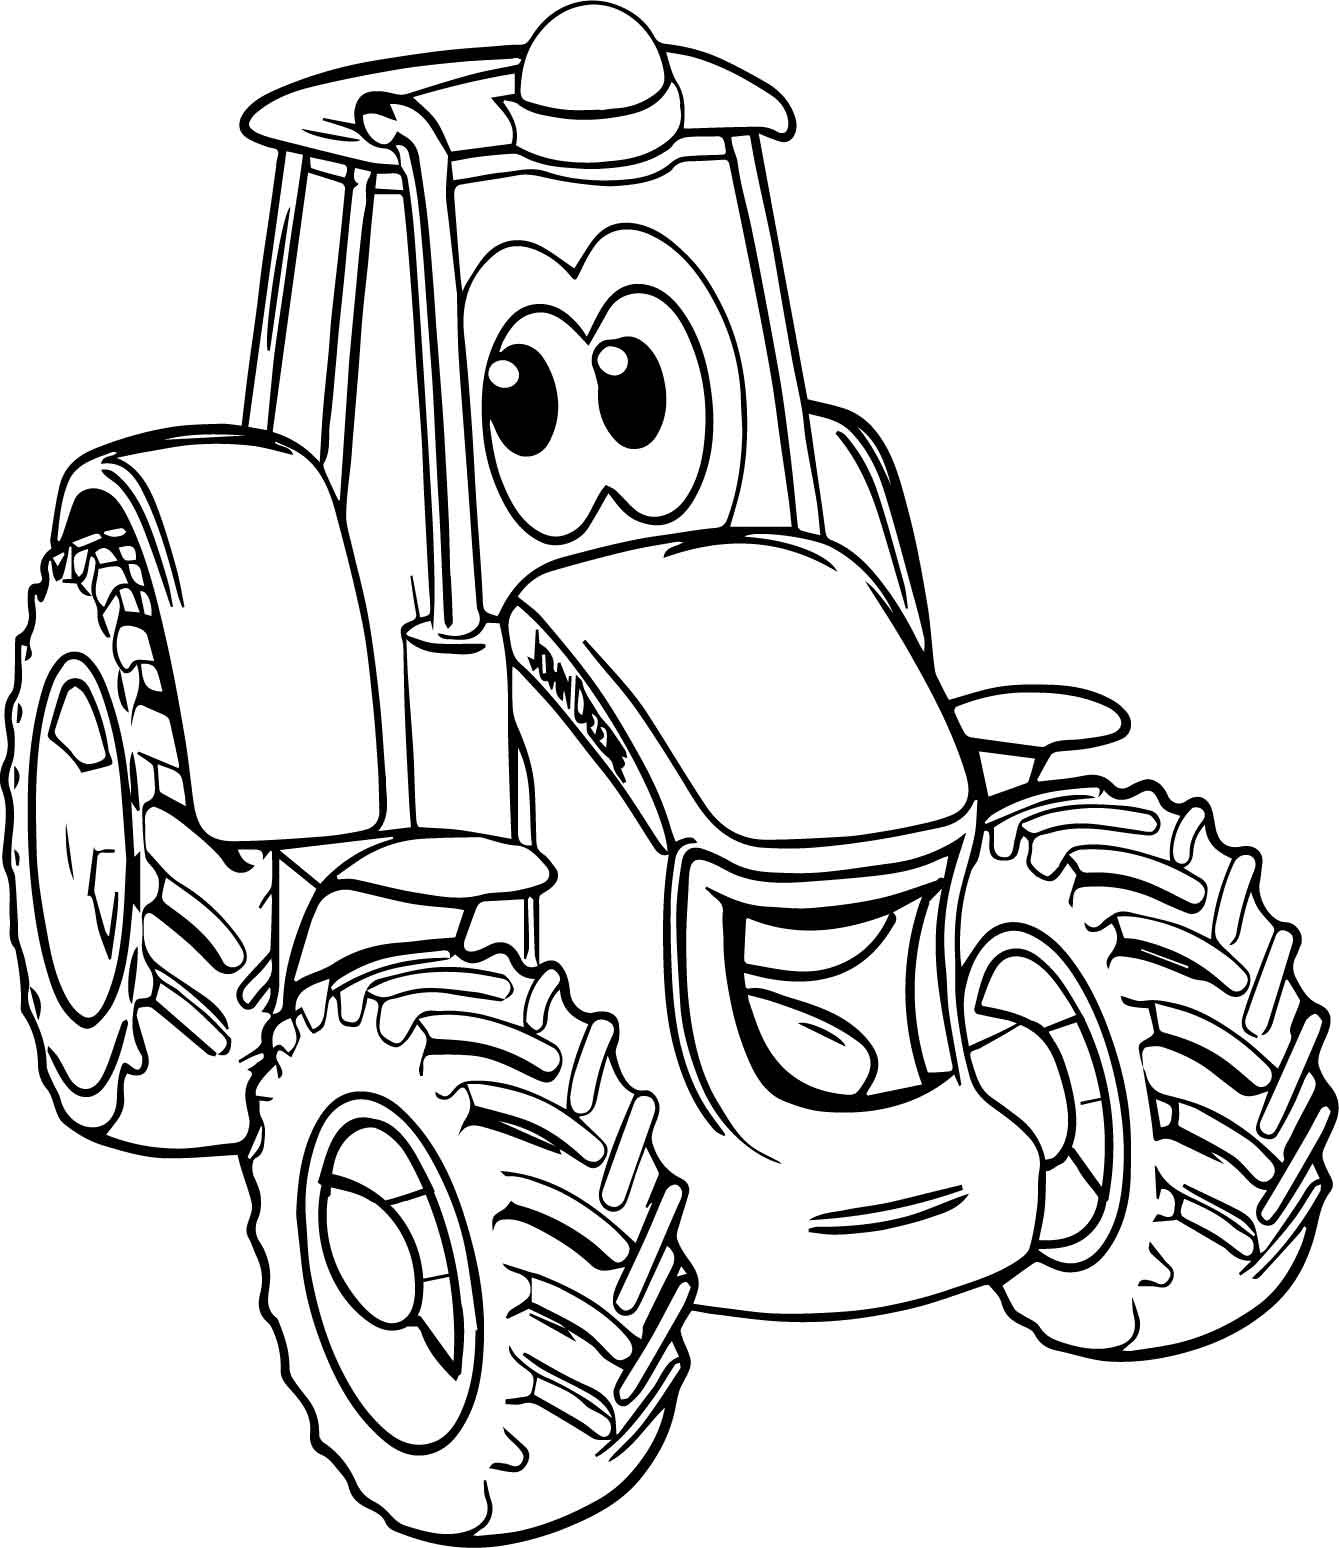 coloring page tractor tractor with a plow coloring pages coloring pages for kids coloring tractor page